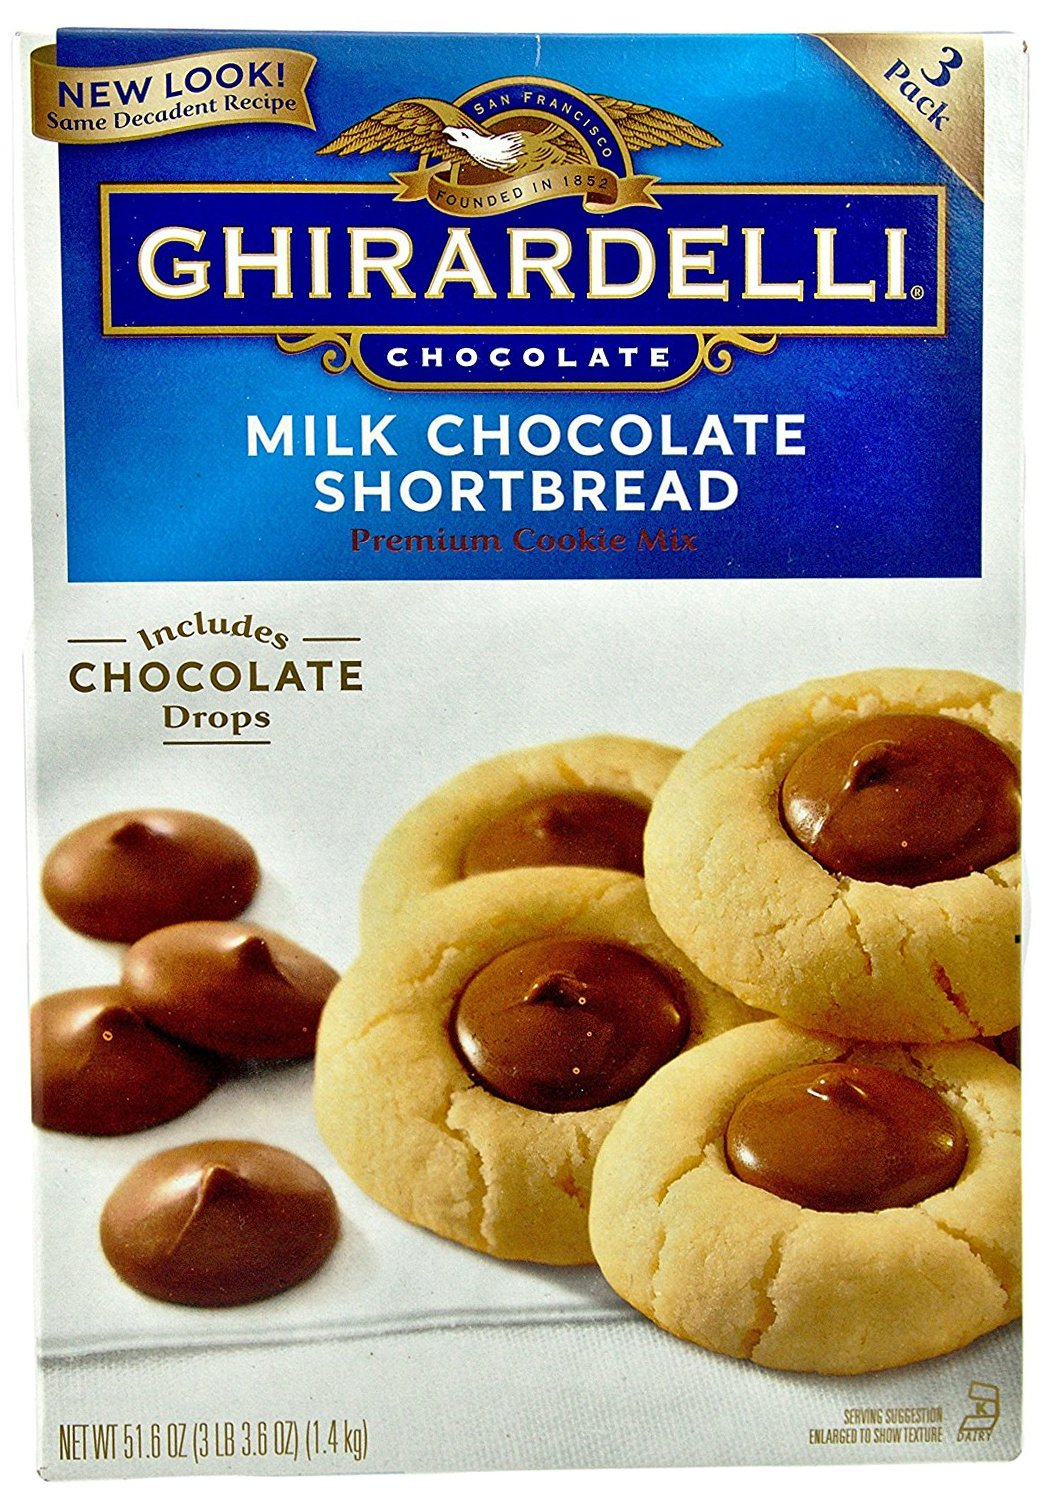 Ghirardelli Milk Chocolate Shortbread Chocolate Drop Premium Cookie Mix 3 Pouches Inside Box, NET WT 51.6 OZ